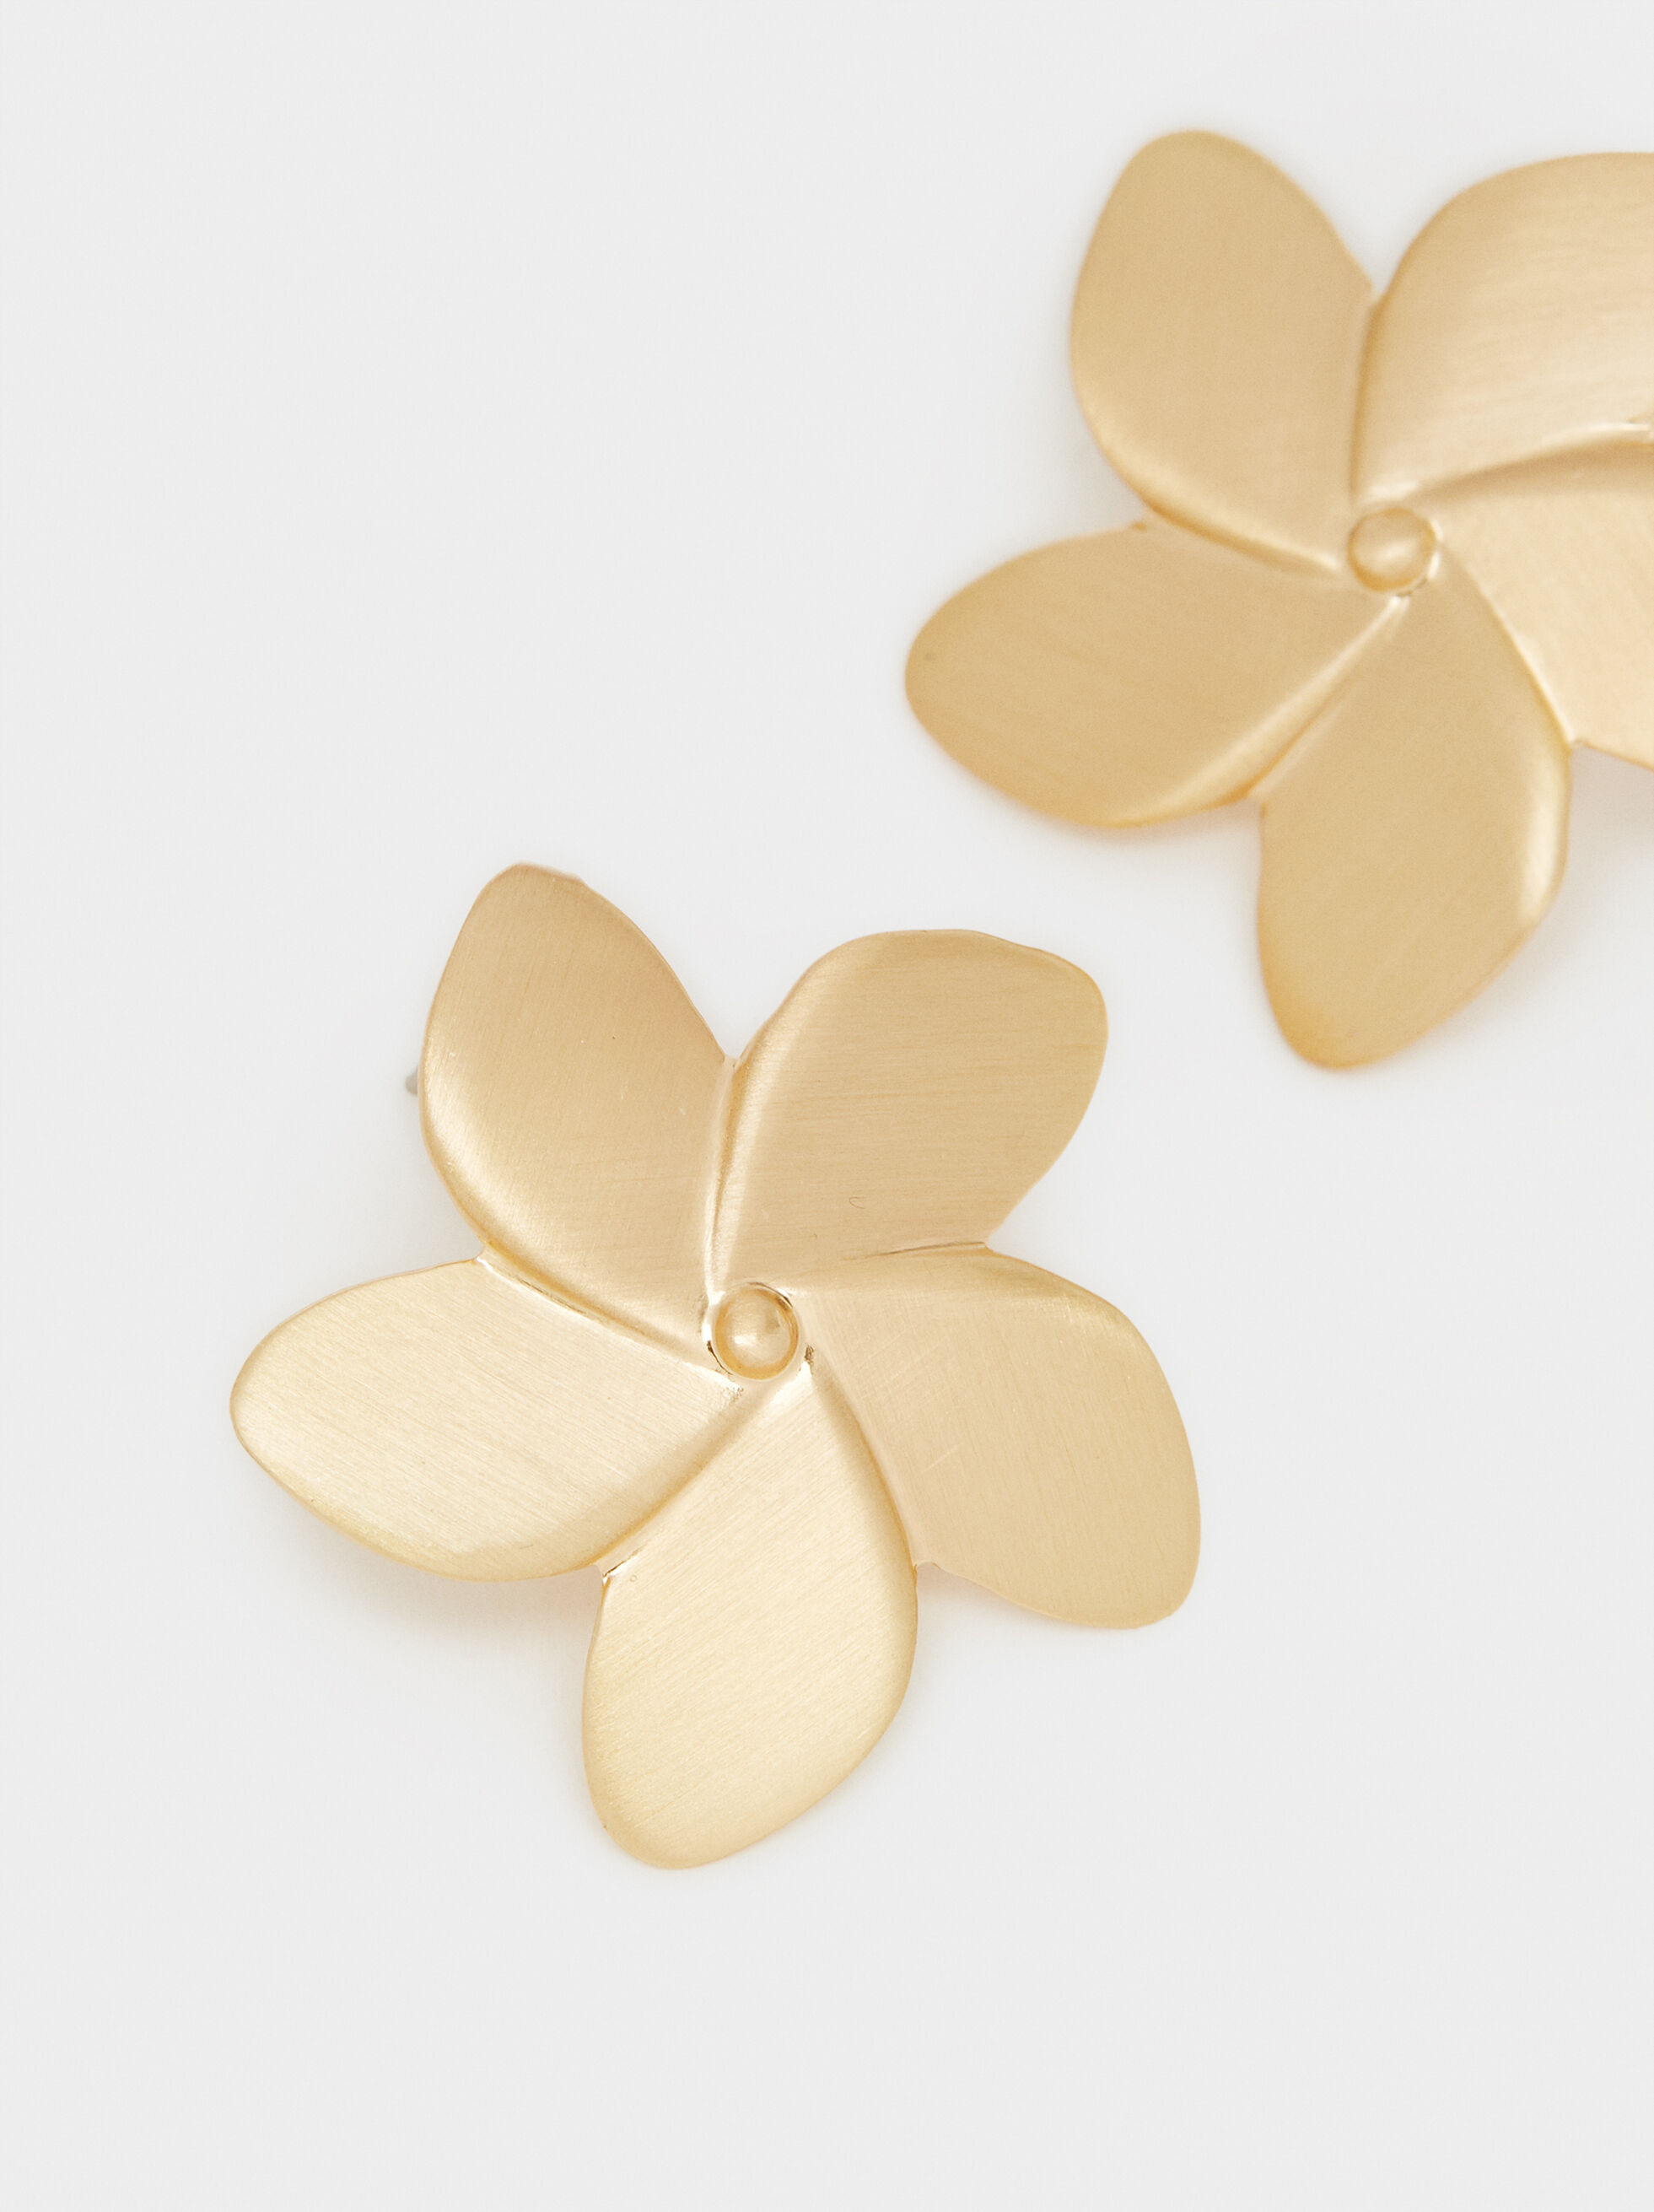 Cherry Blossom Flower Stud Earrings, Golden, hi-res